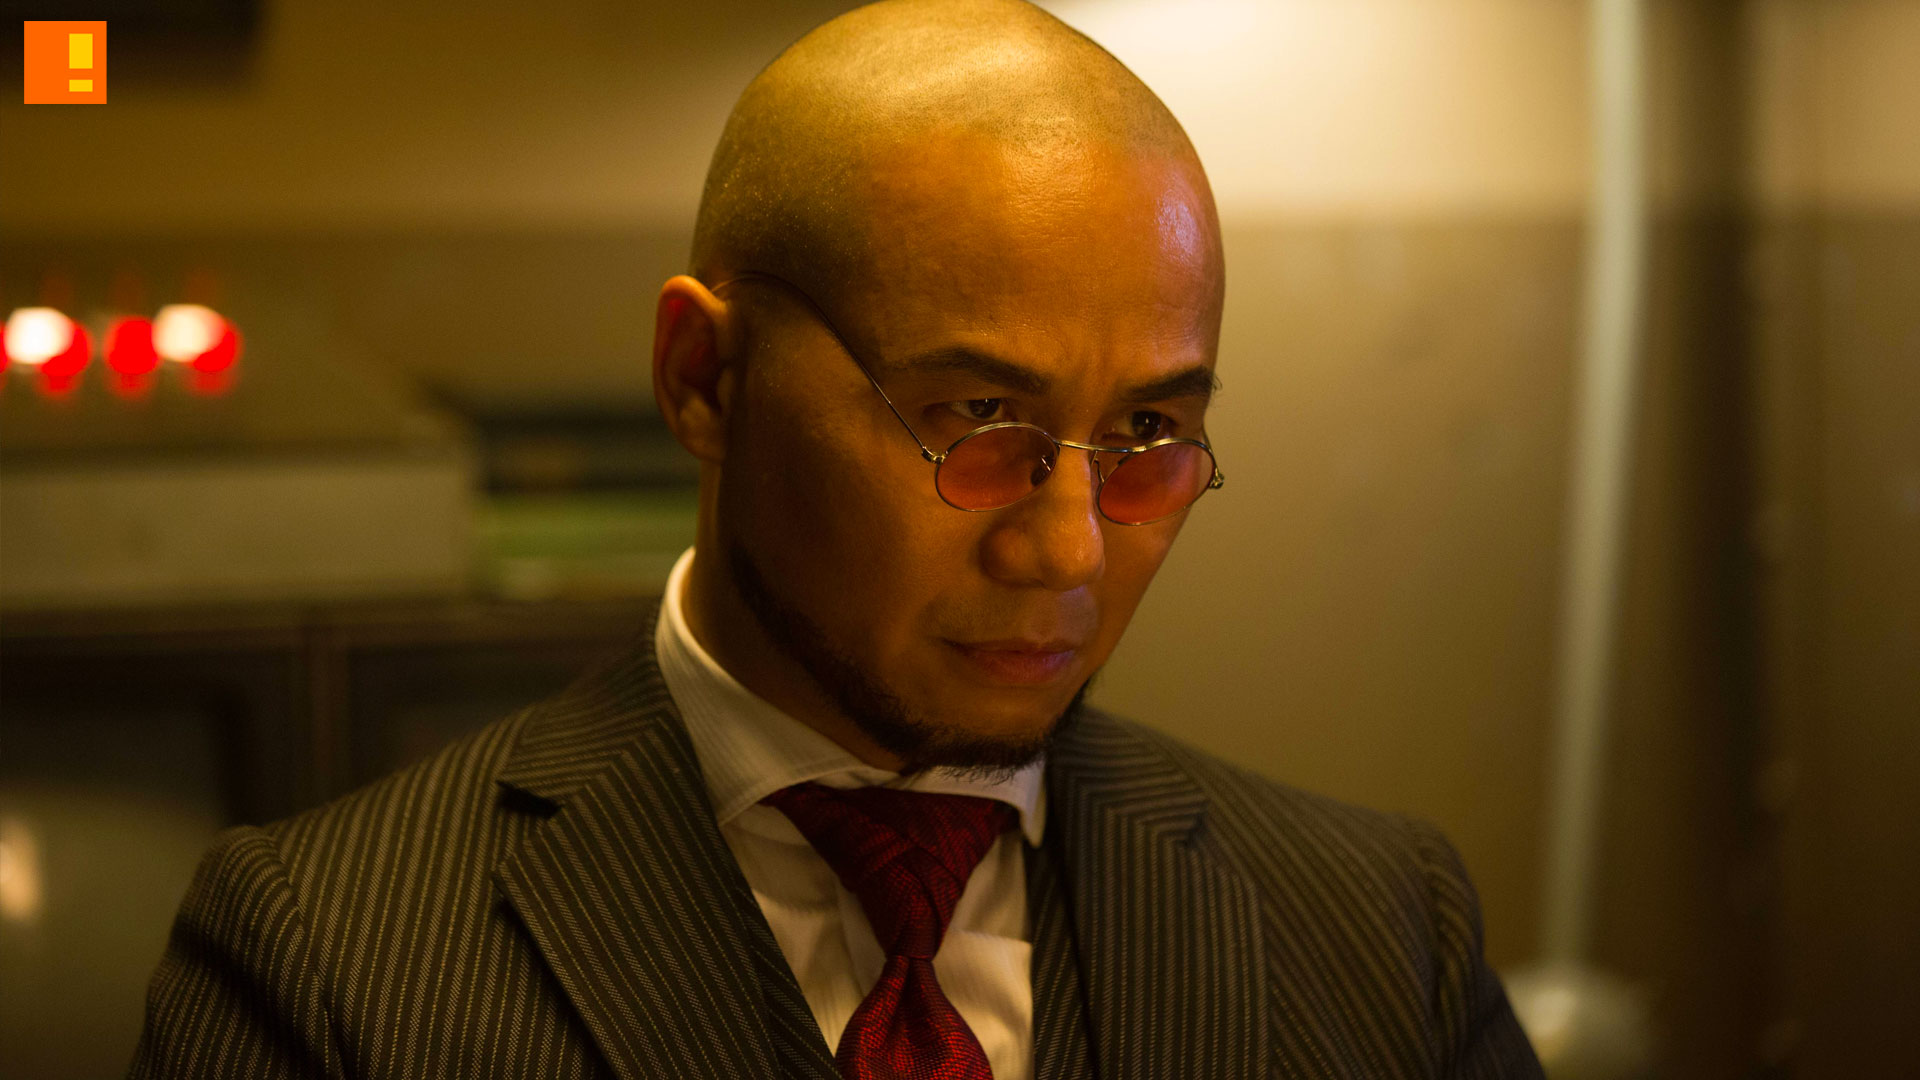 hugo strange. bd wong. gotham. fox. dc comics. the action pixel. @theactionpixel